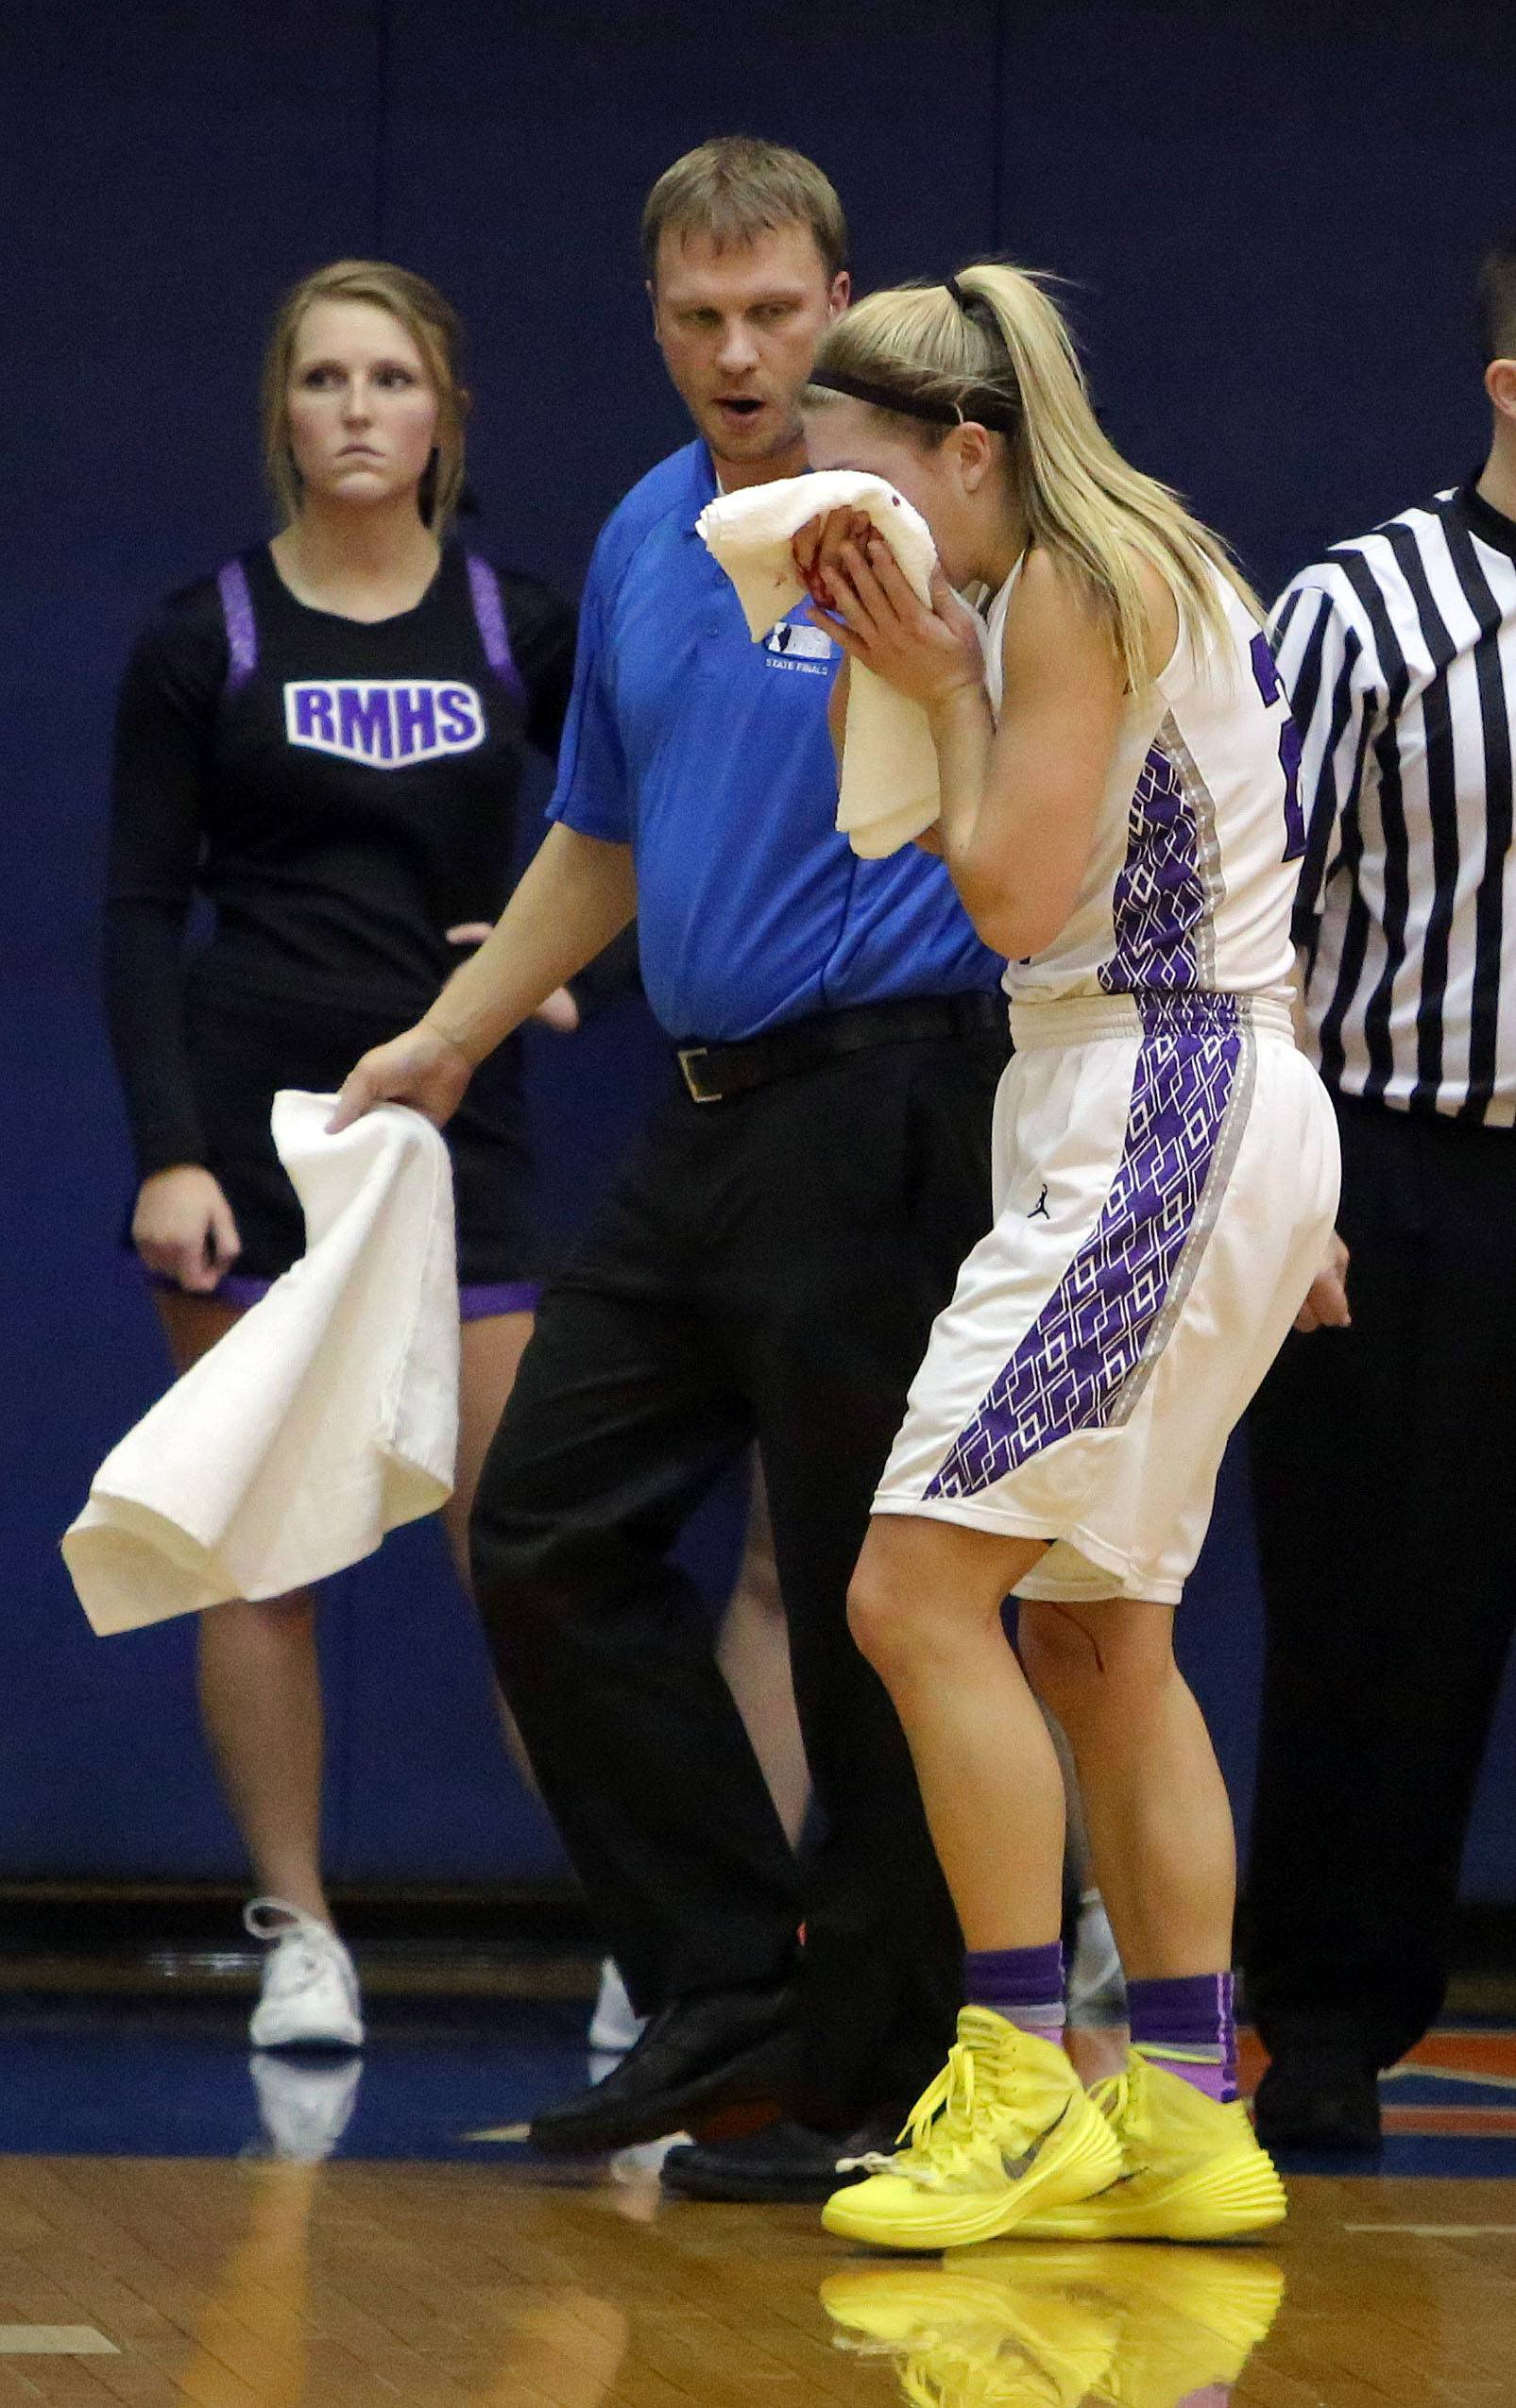 Rolling Meadows' Alexis Glasgow is taken off the court after getting elbowed in the nose.